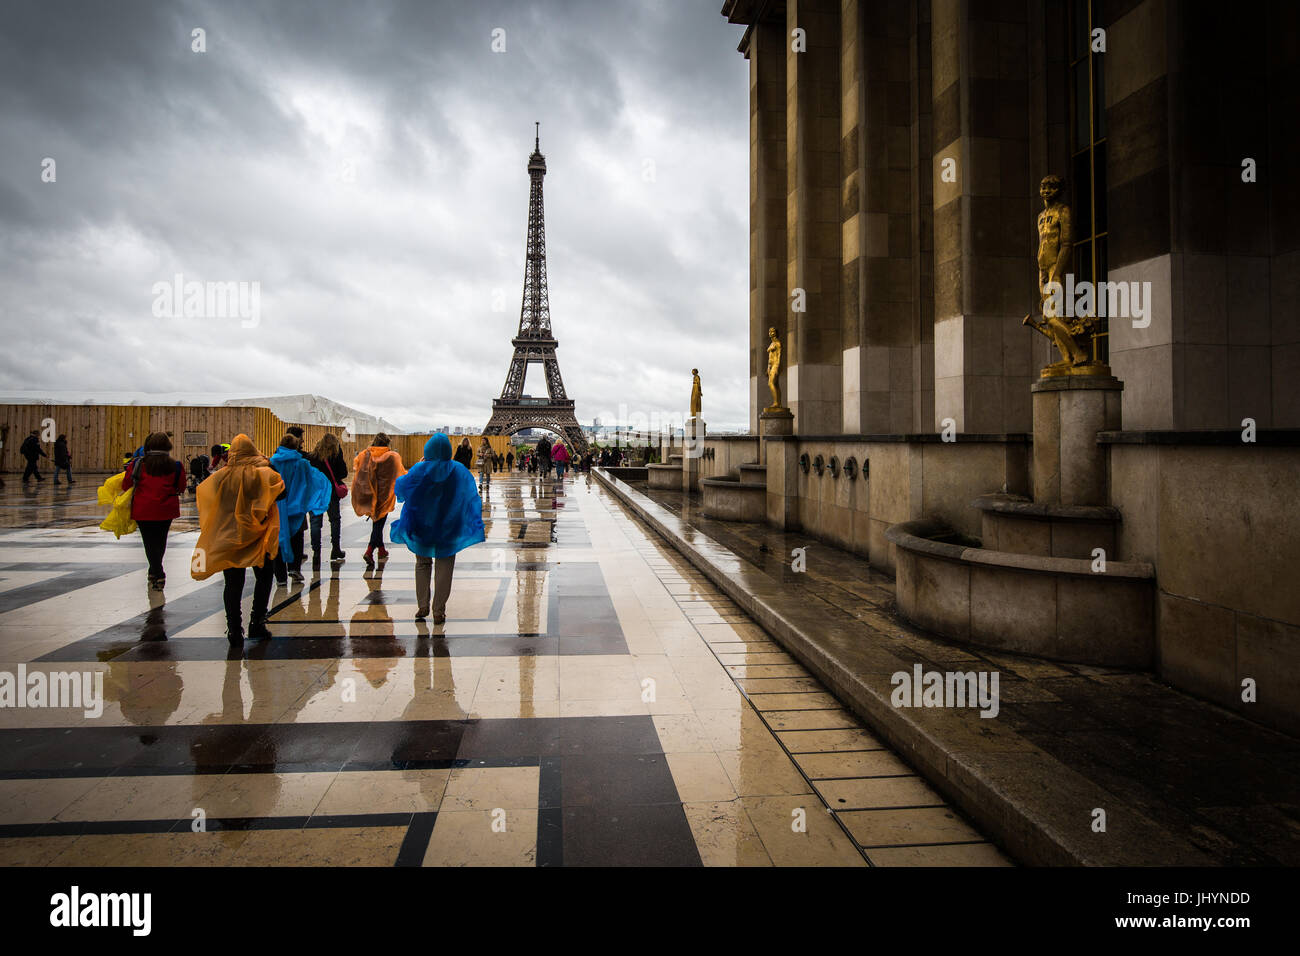 Heading towards the Eiffel Tower, tourists brave the rain in colourful ponchos at the Palais De Chaillot, Paris, - Stock Image